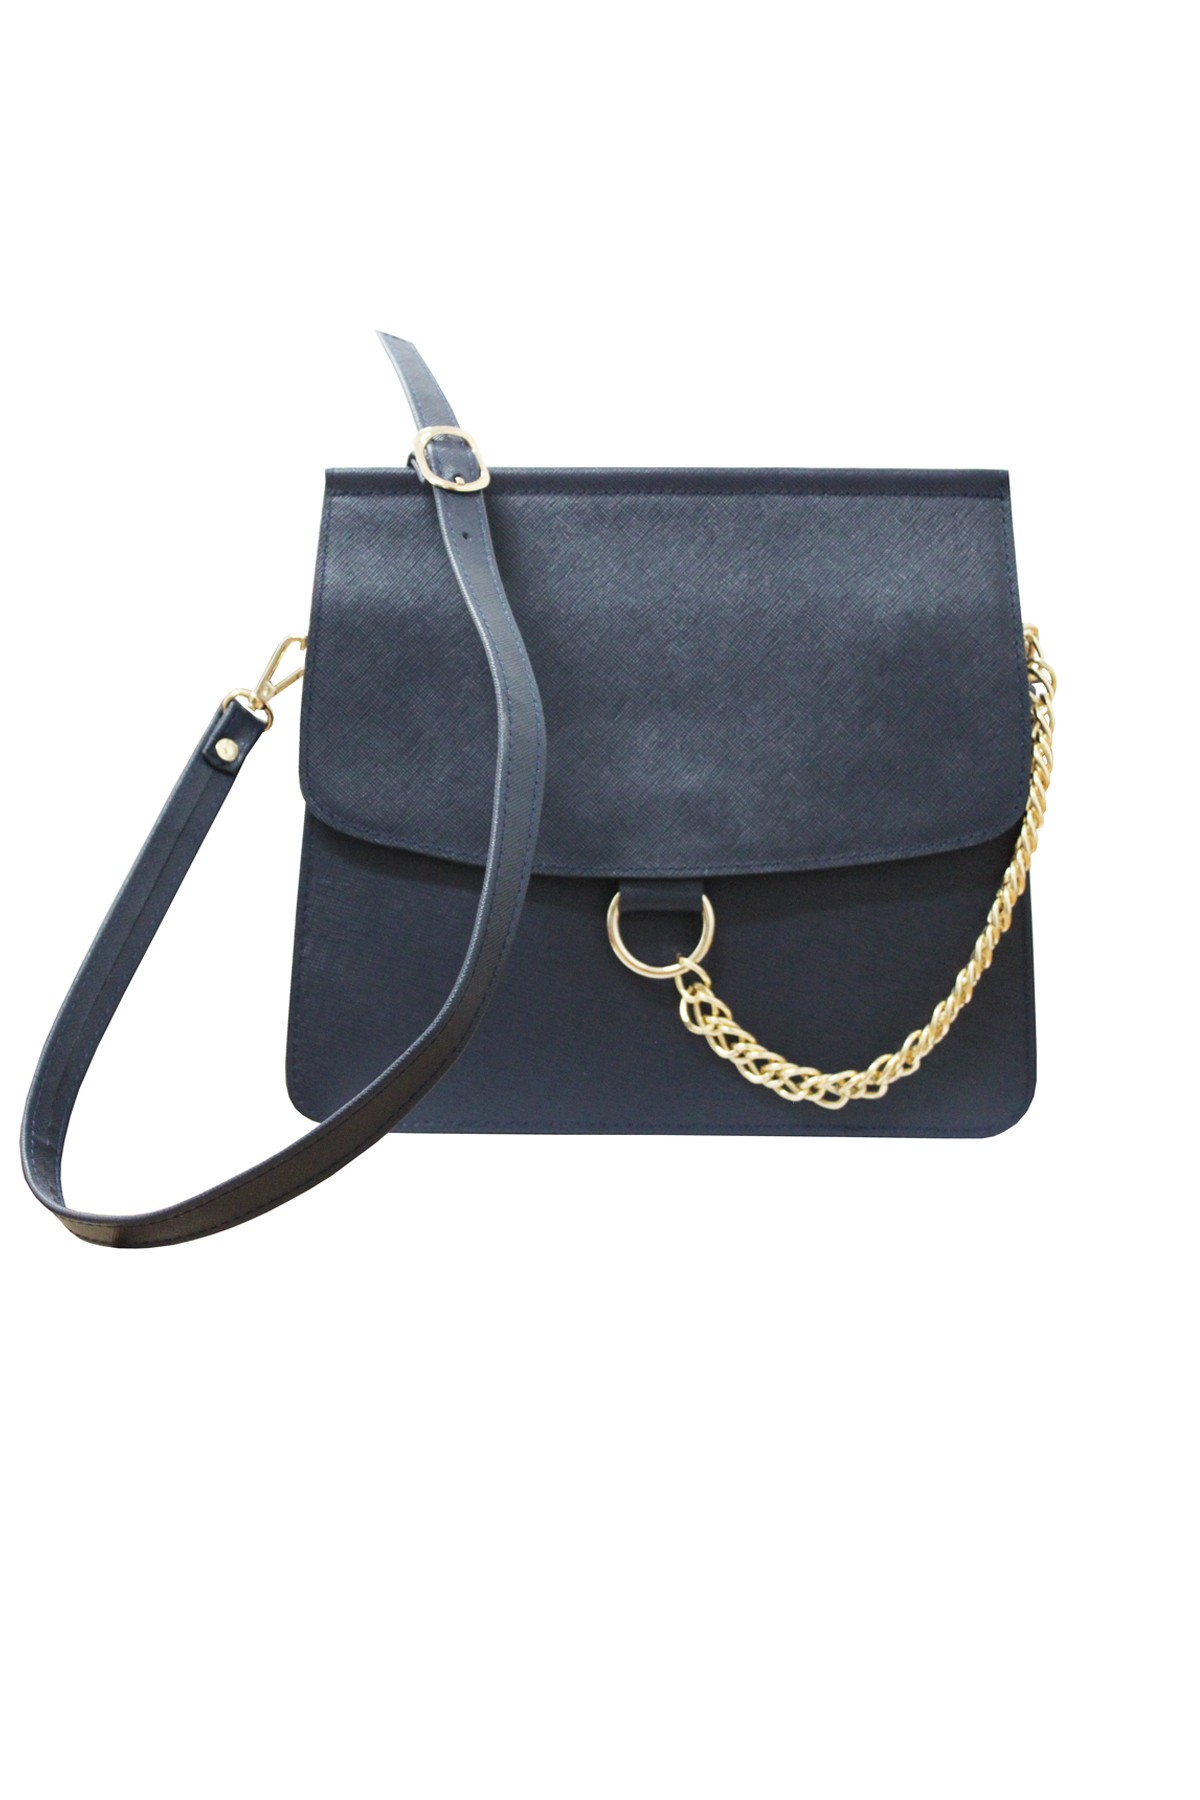 chloe-like-bag